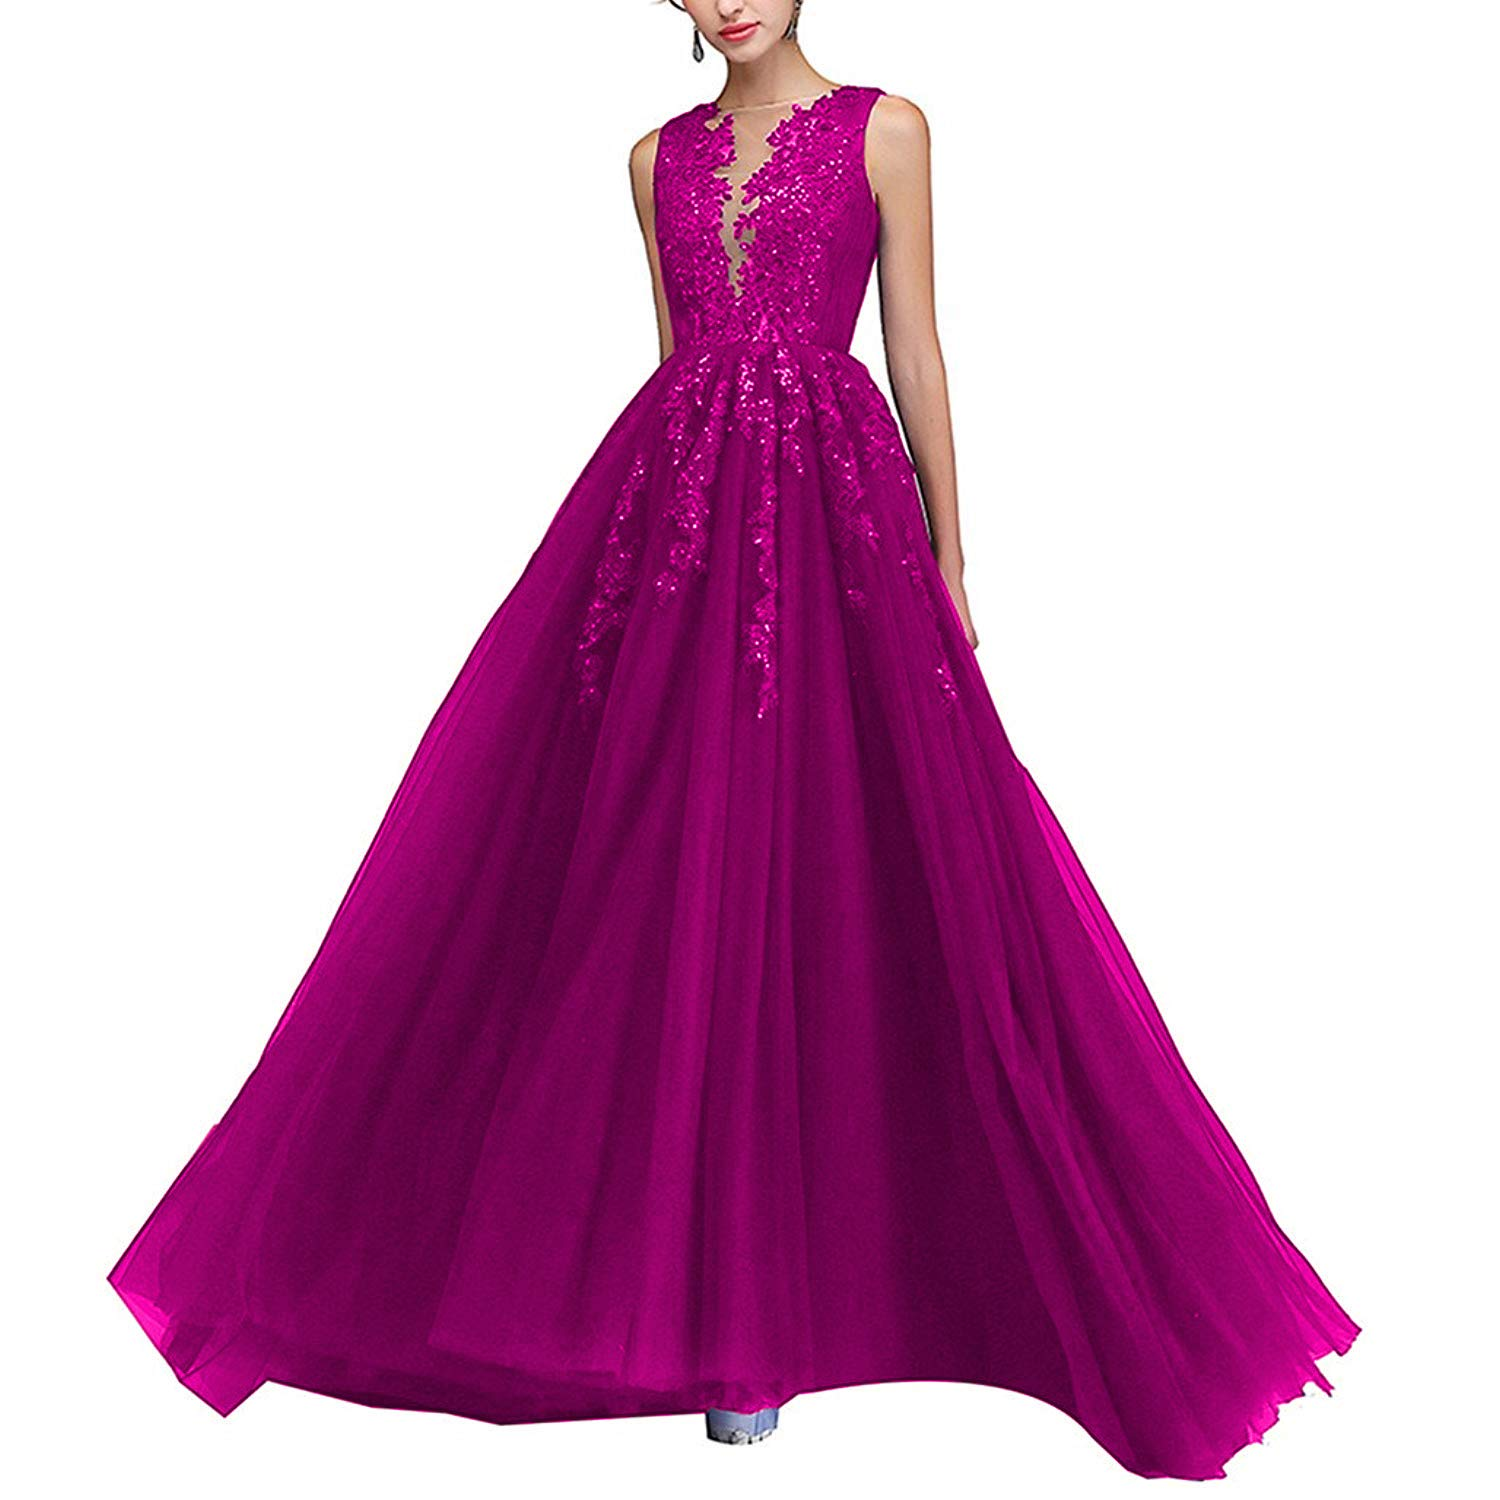 Fuchsia PearlBridal Illusion Neck Lace Appliques Long Prom Dresses Beaded Tulle Evening Dress for Women Side Slit